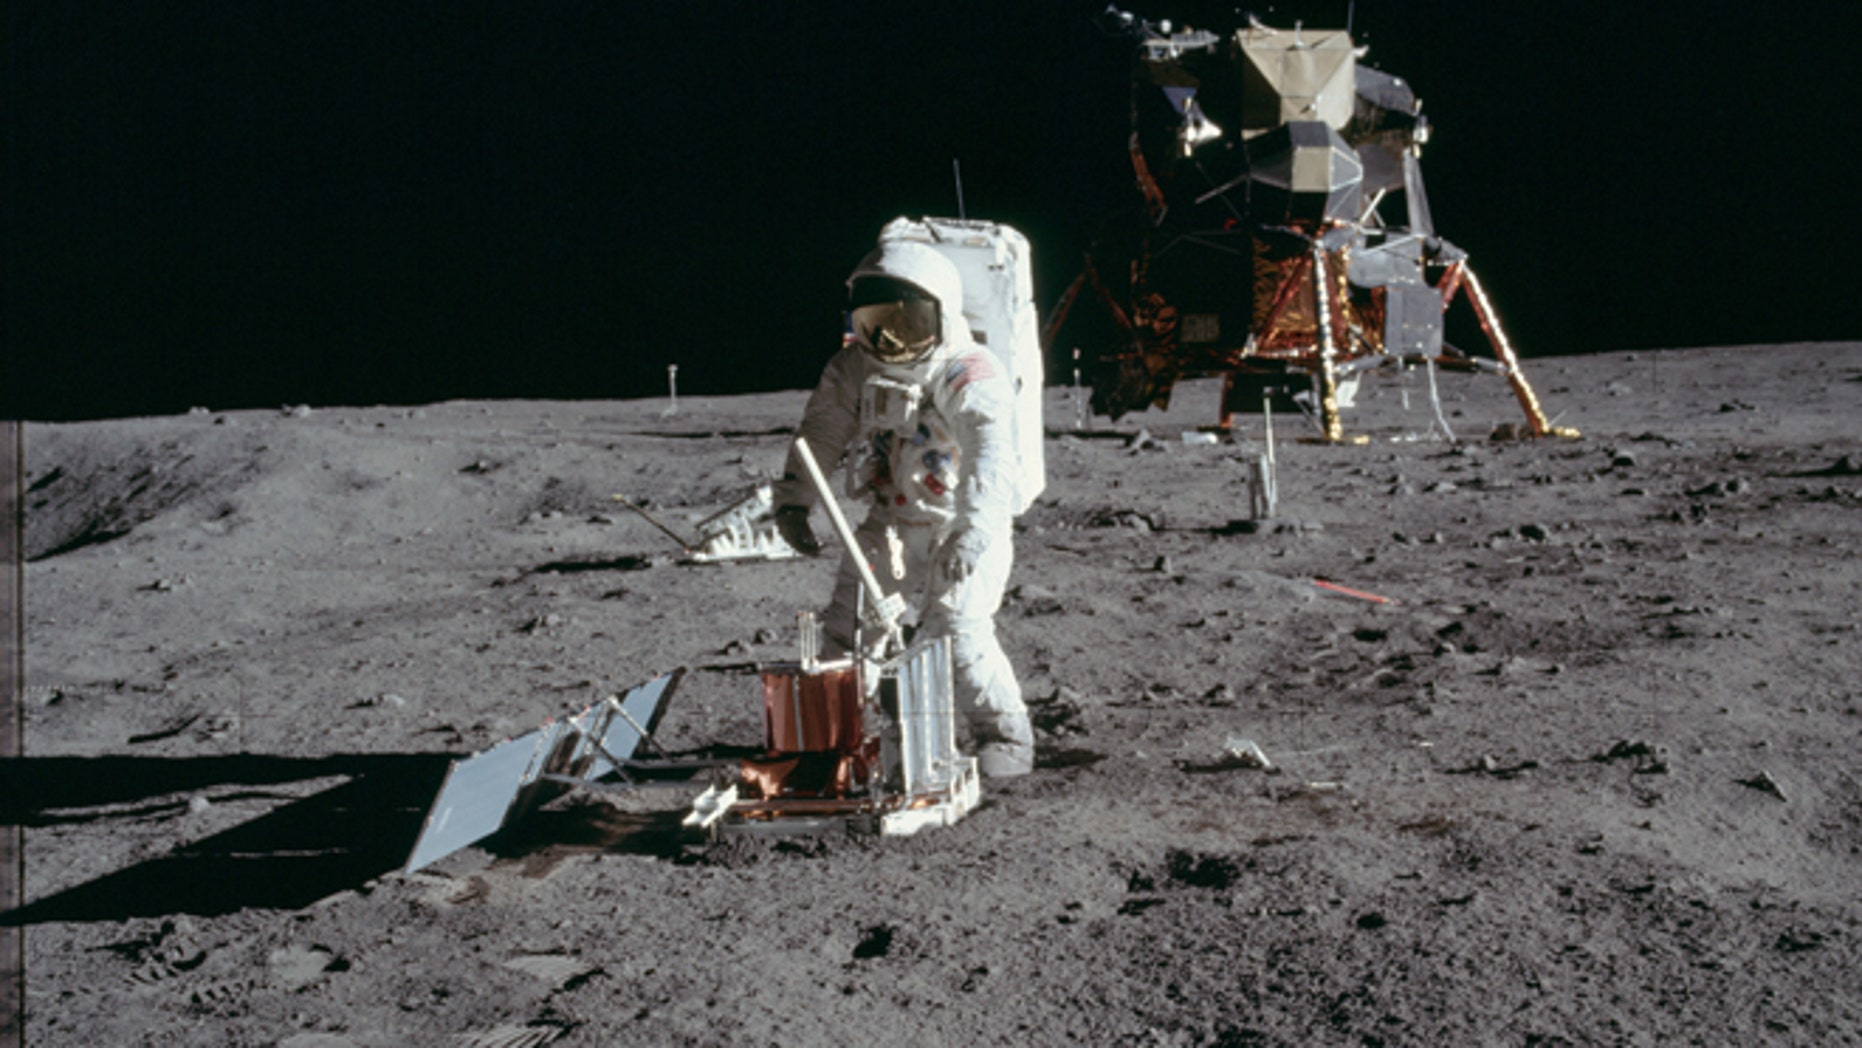 """Astronaut Edwin E. Aldrin Jr., lunar module pilot, deploys a scientific research package on the surface of the moon near the Lunar Module """"Eagle"""" during the Apollo 11 extravehicular activity (EVA) in this July 20, 1969"""